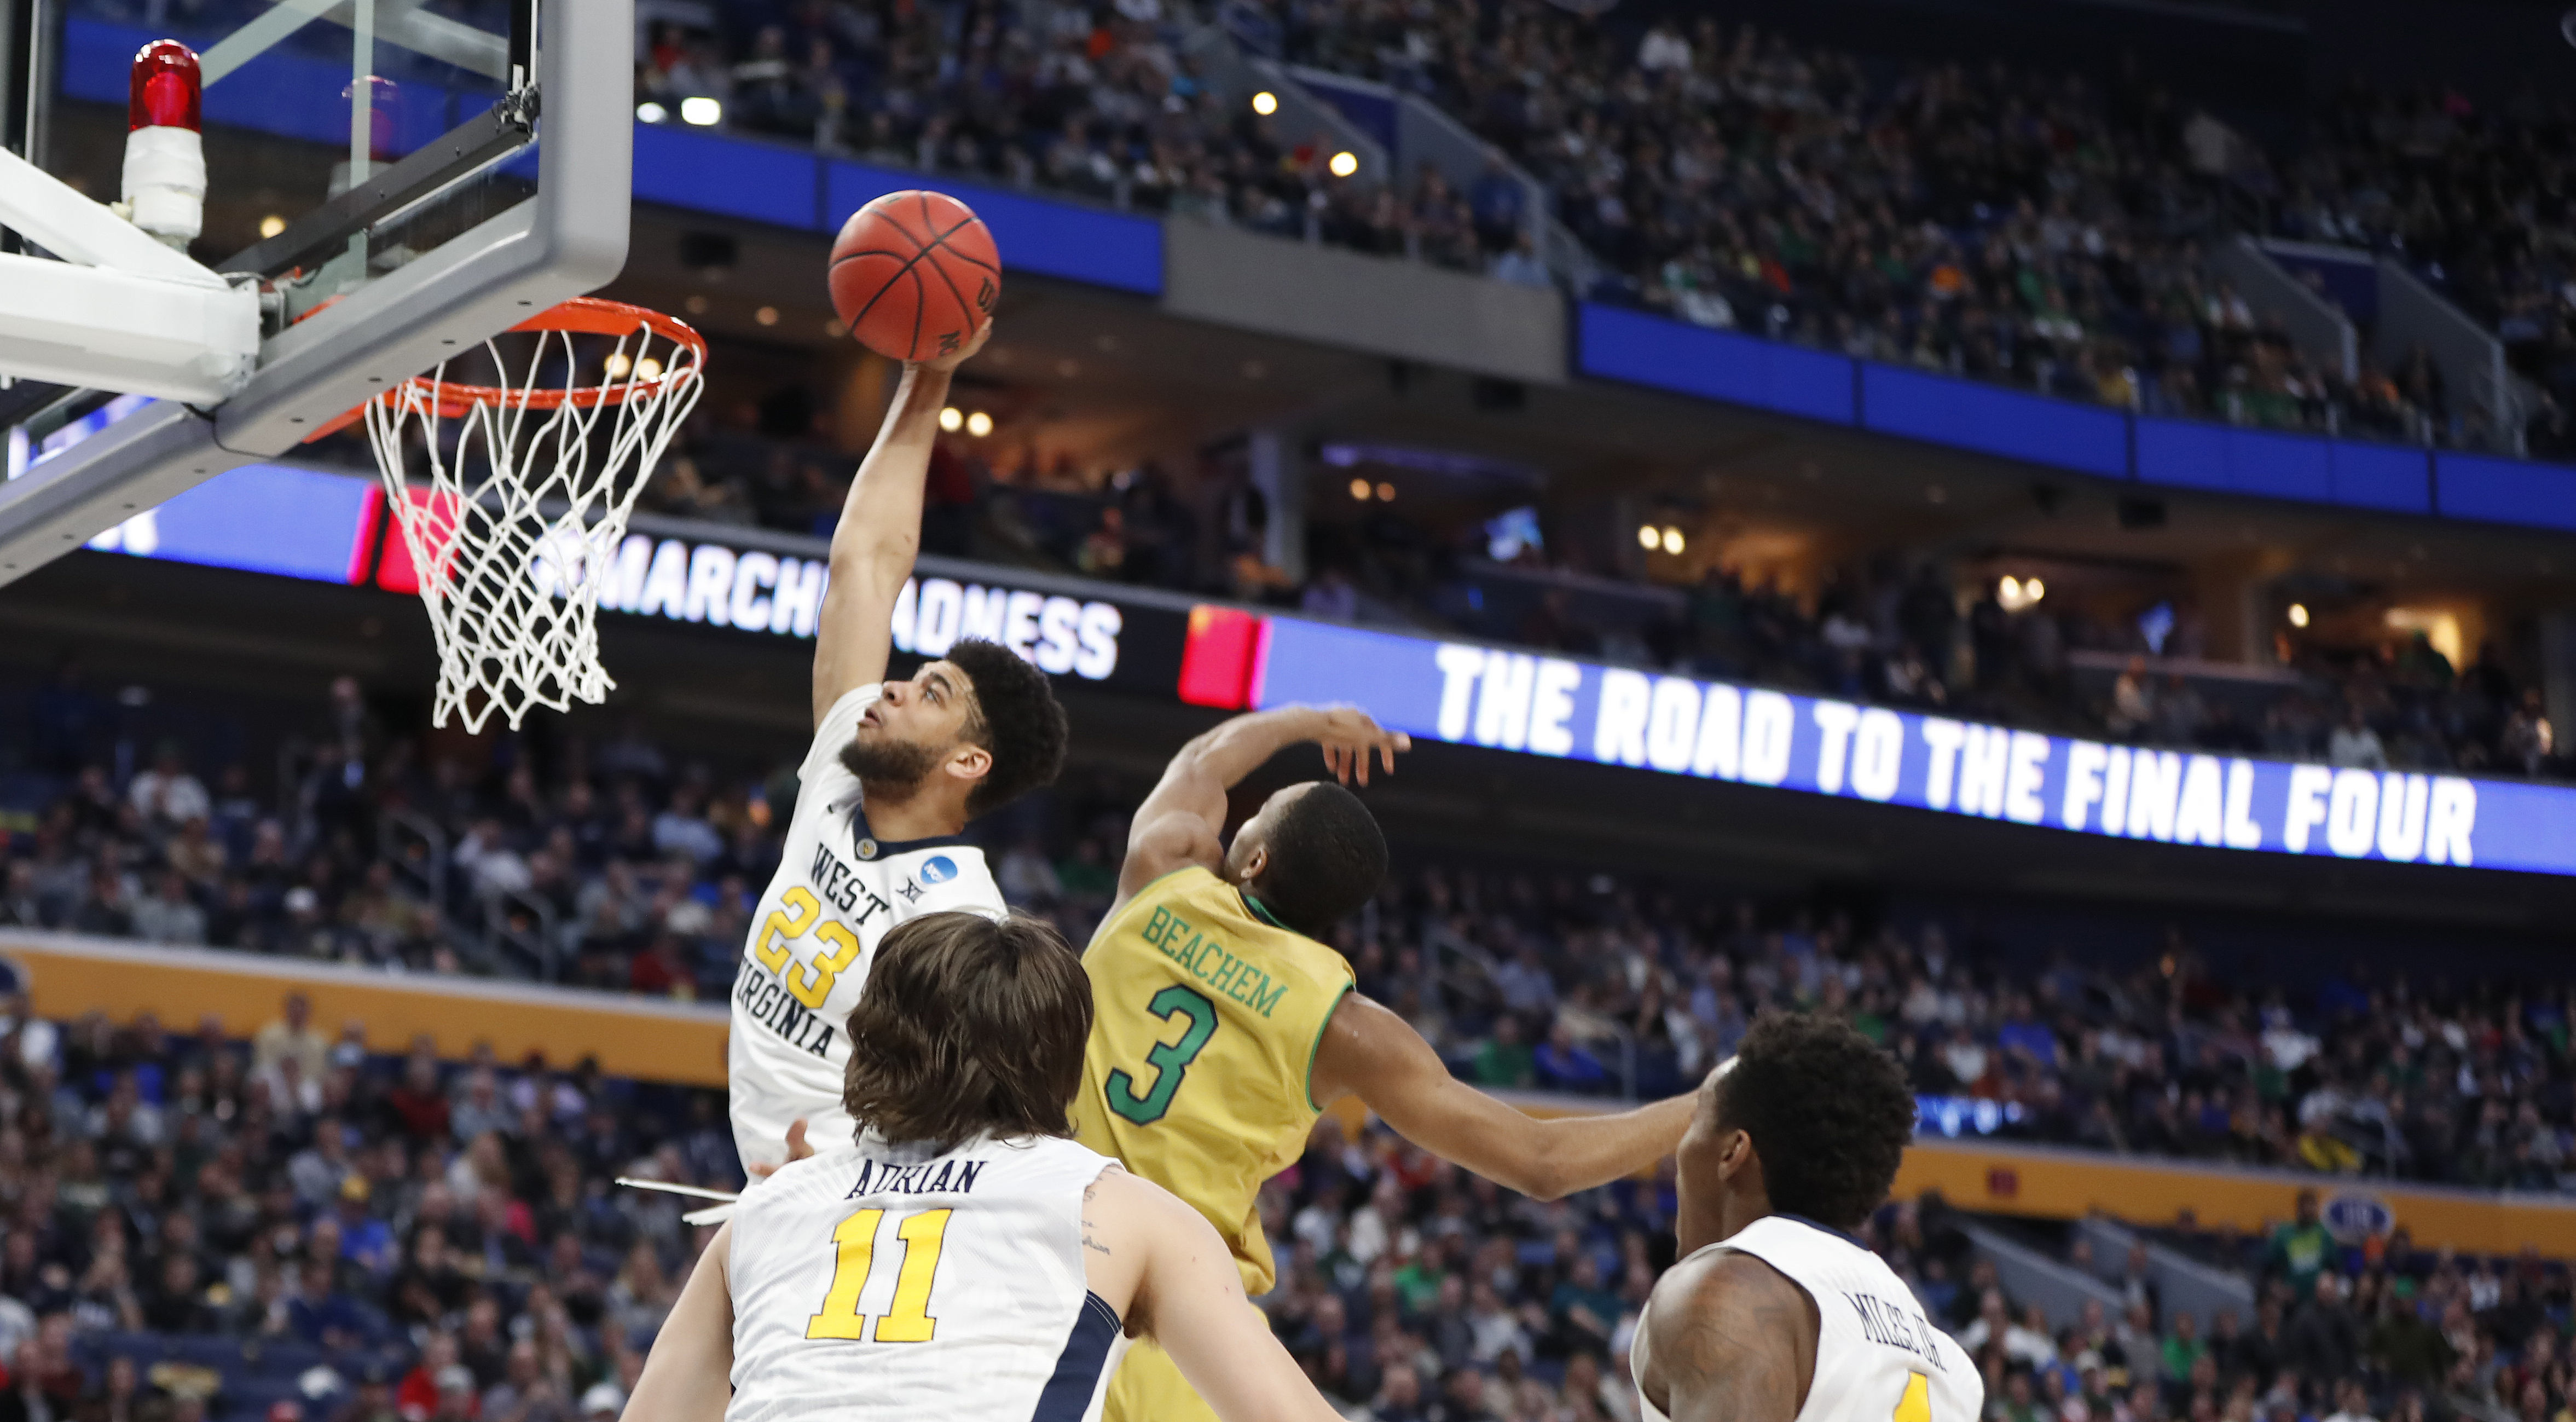 West Virginia's Esa Ahmad dunks against Notre Dame during second half action of the second round of the 2017 NCAA Men's Basketball Tournament at the KeyBank Center on Saturday, March 18, 2017. (Harry Scull Jr./Buffalo News)